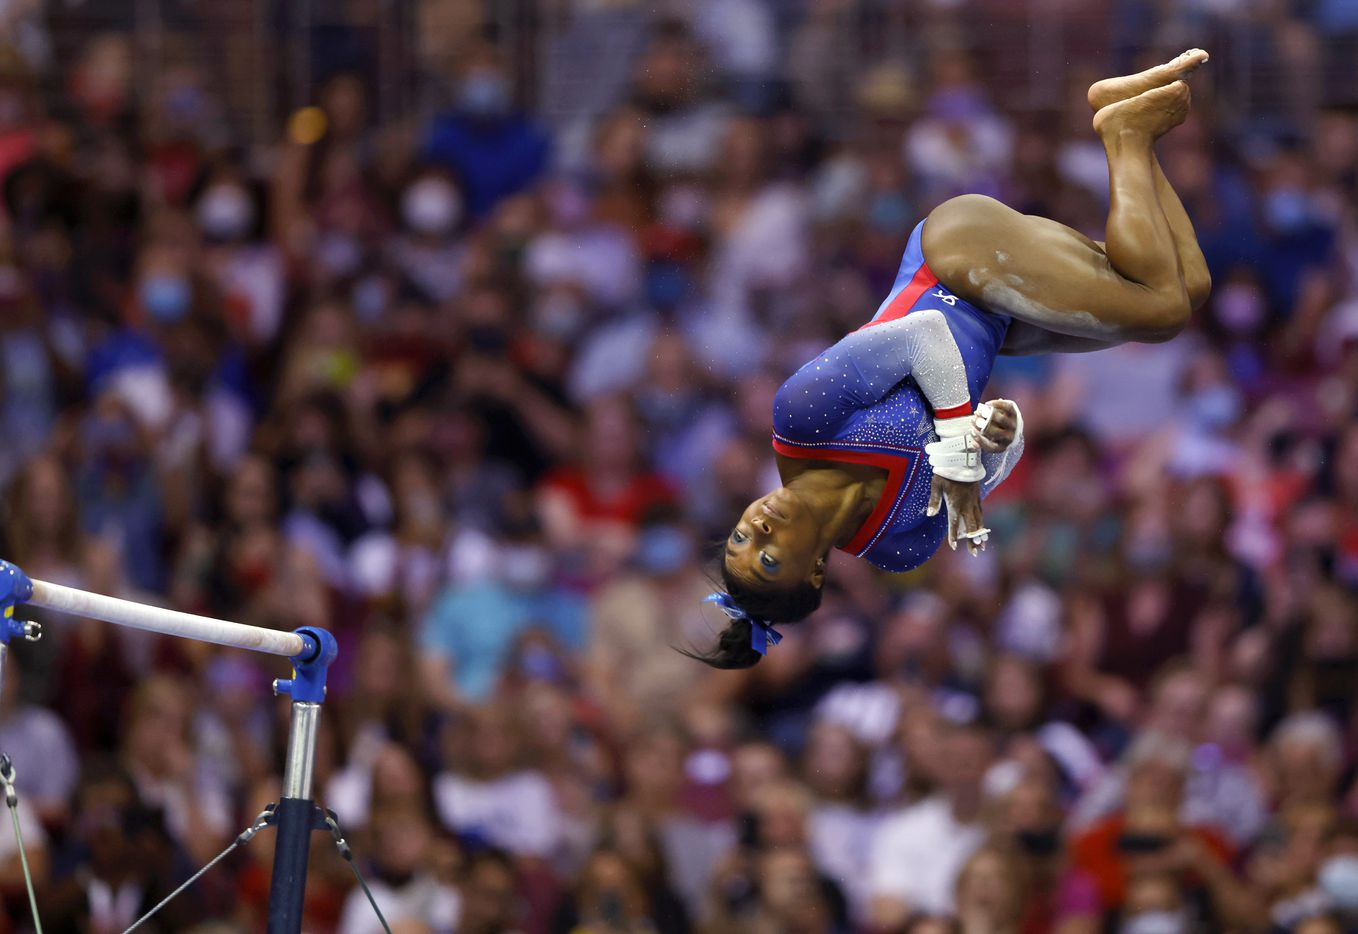 Simone Biles of World Champions competes in the uneven bars during day 1 of the women's 2021 U.S. Olympic Trials at America's Center on Friday, June 25, 2021 in St Louis, Missouri.(Vernon Bryant/The Dallas Morning News)